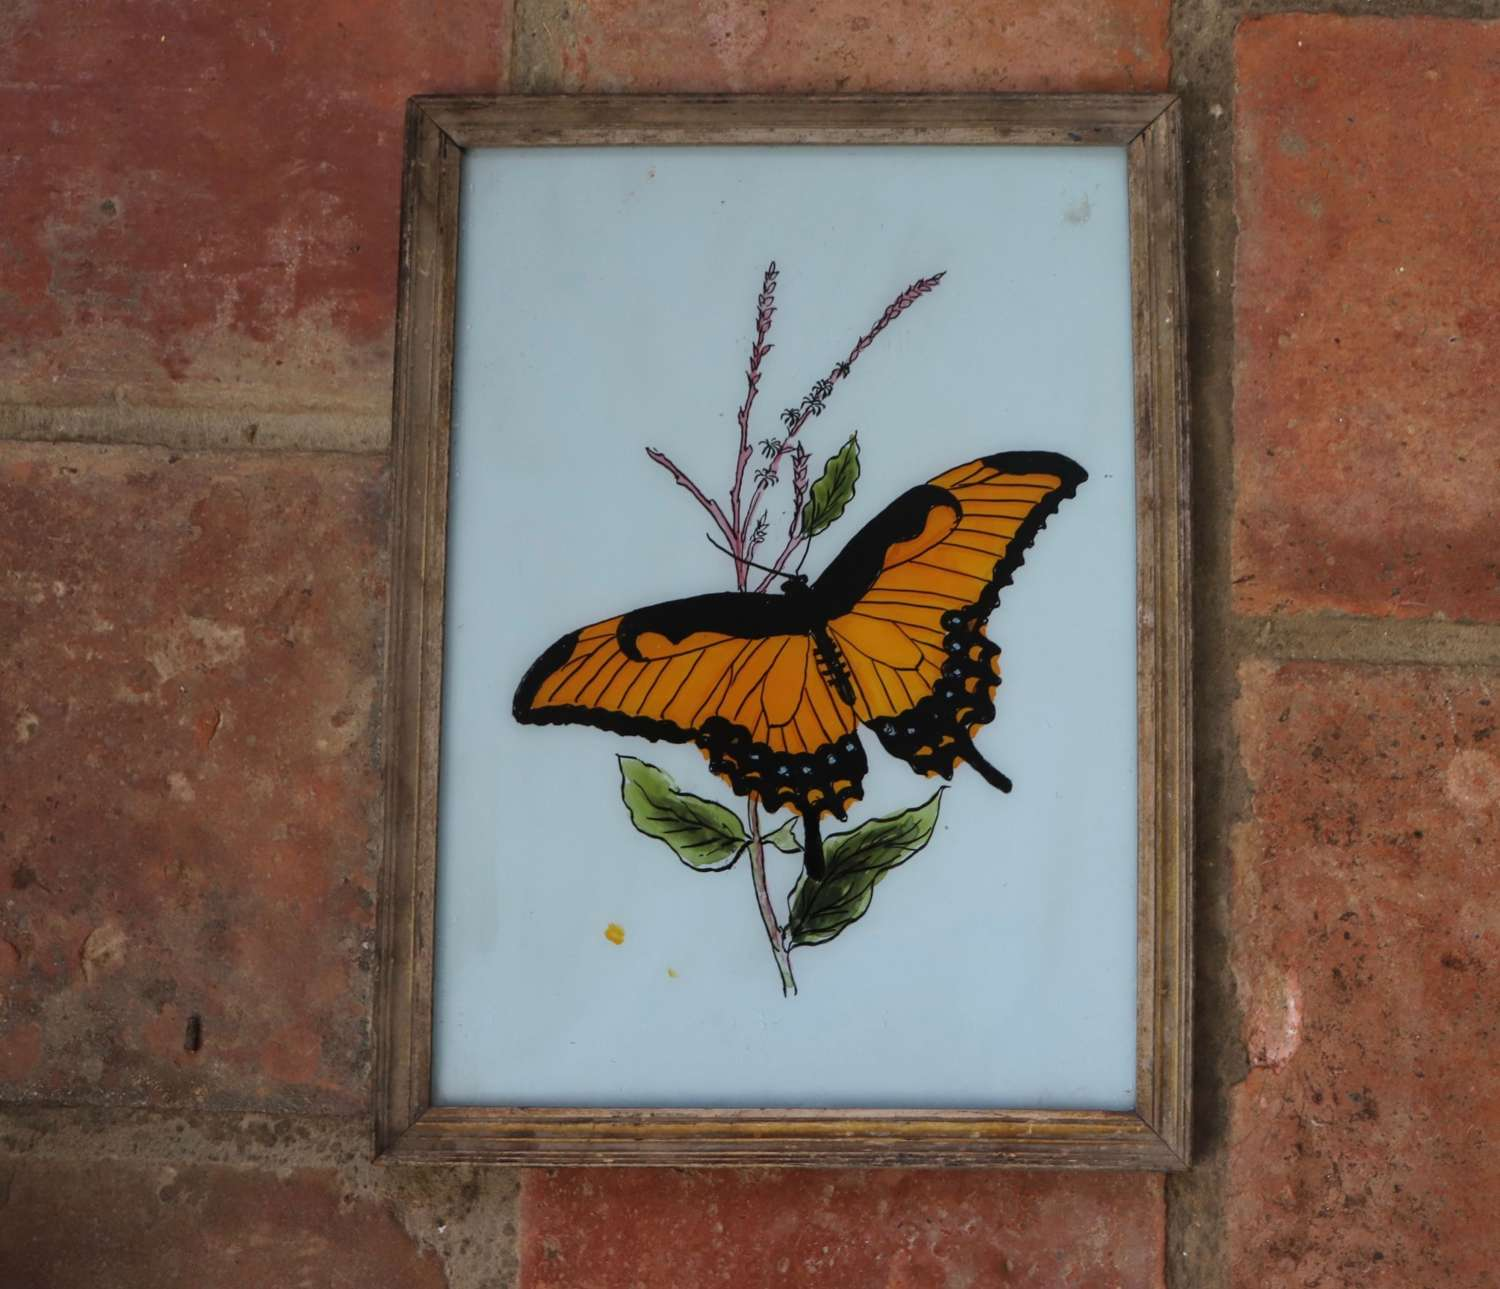 Indian reverse glass painting in old frame